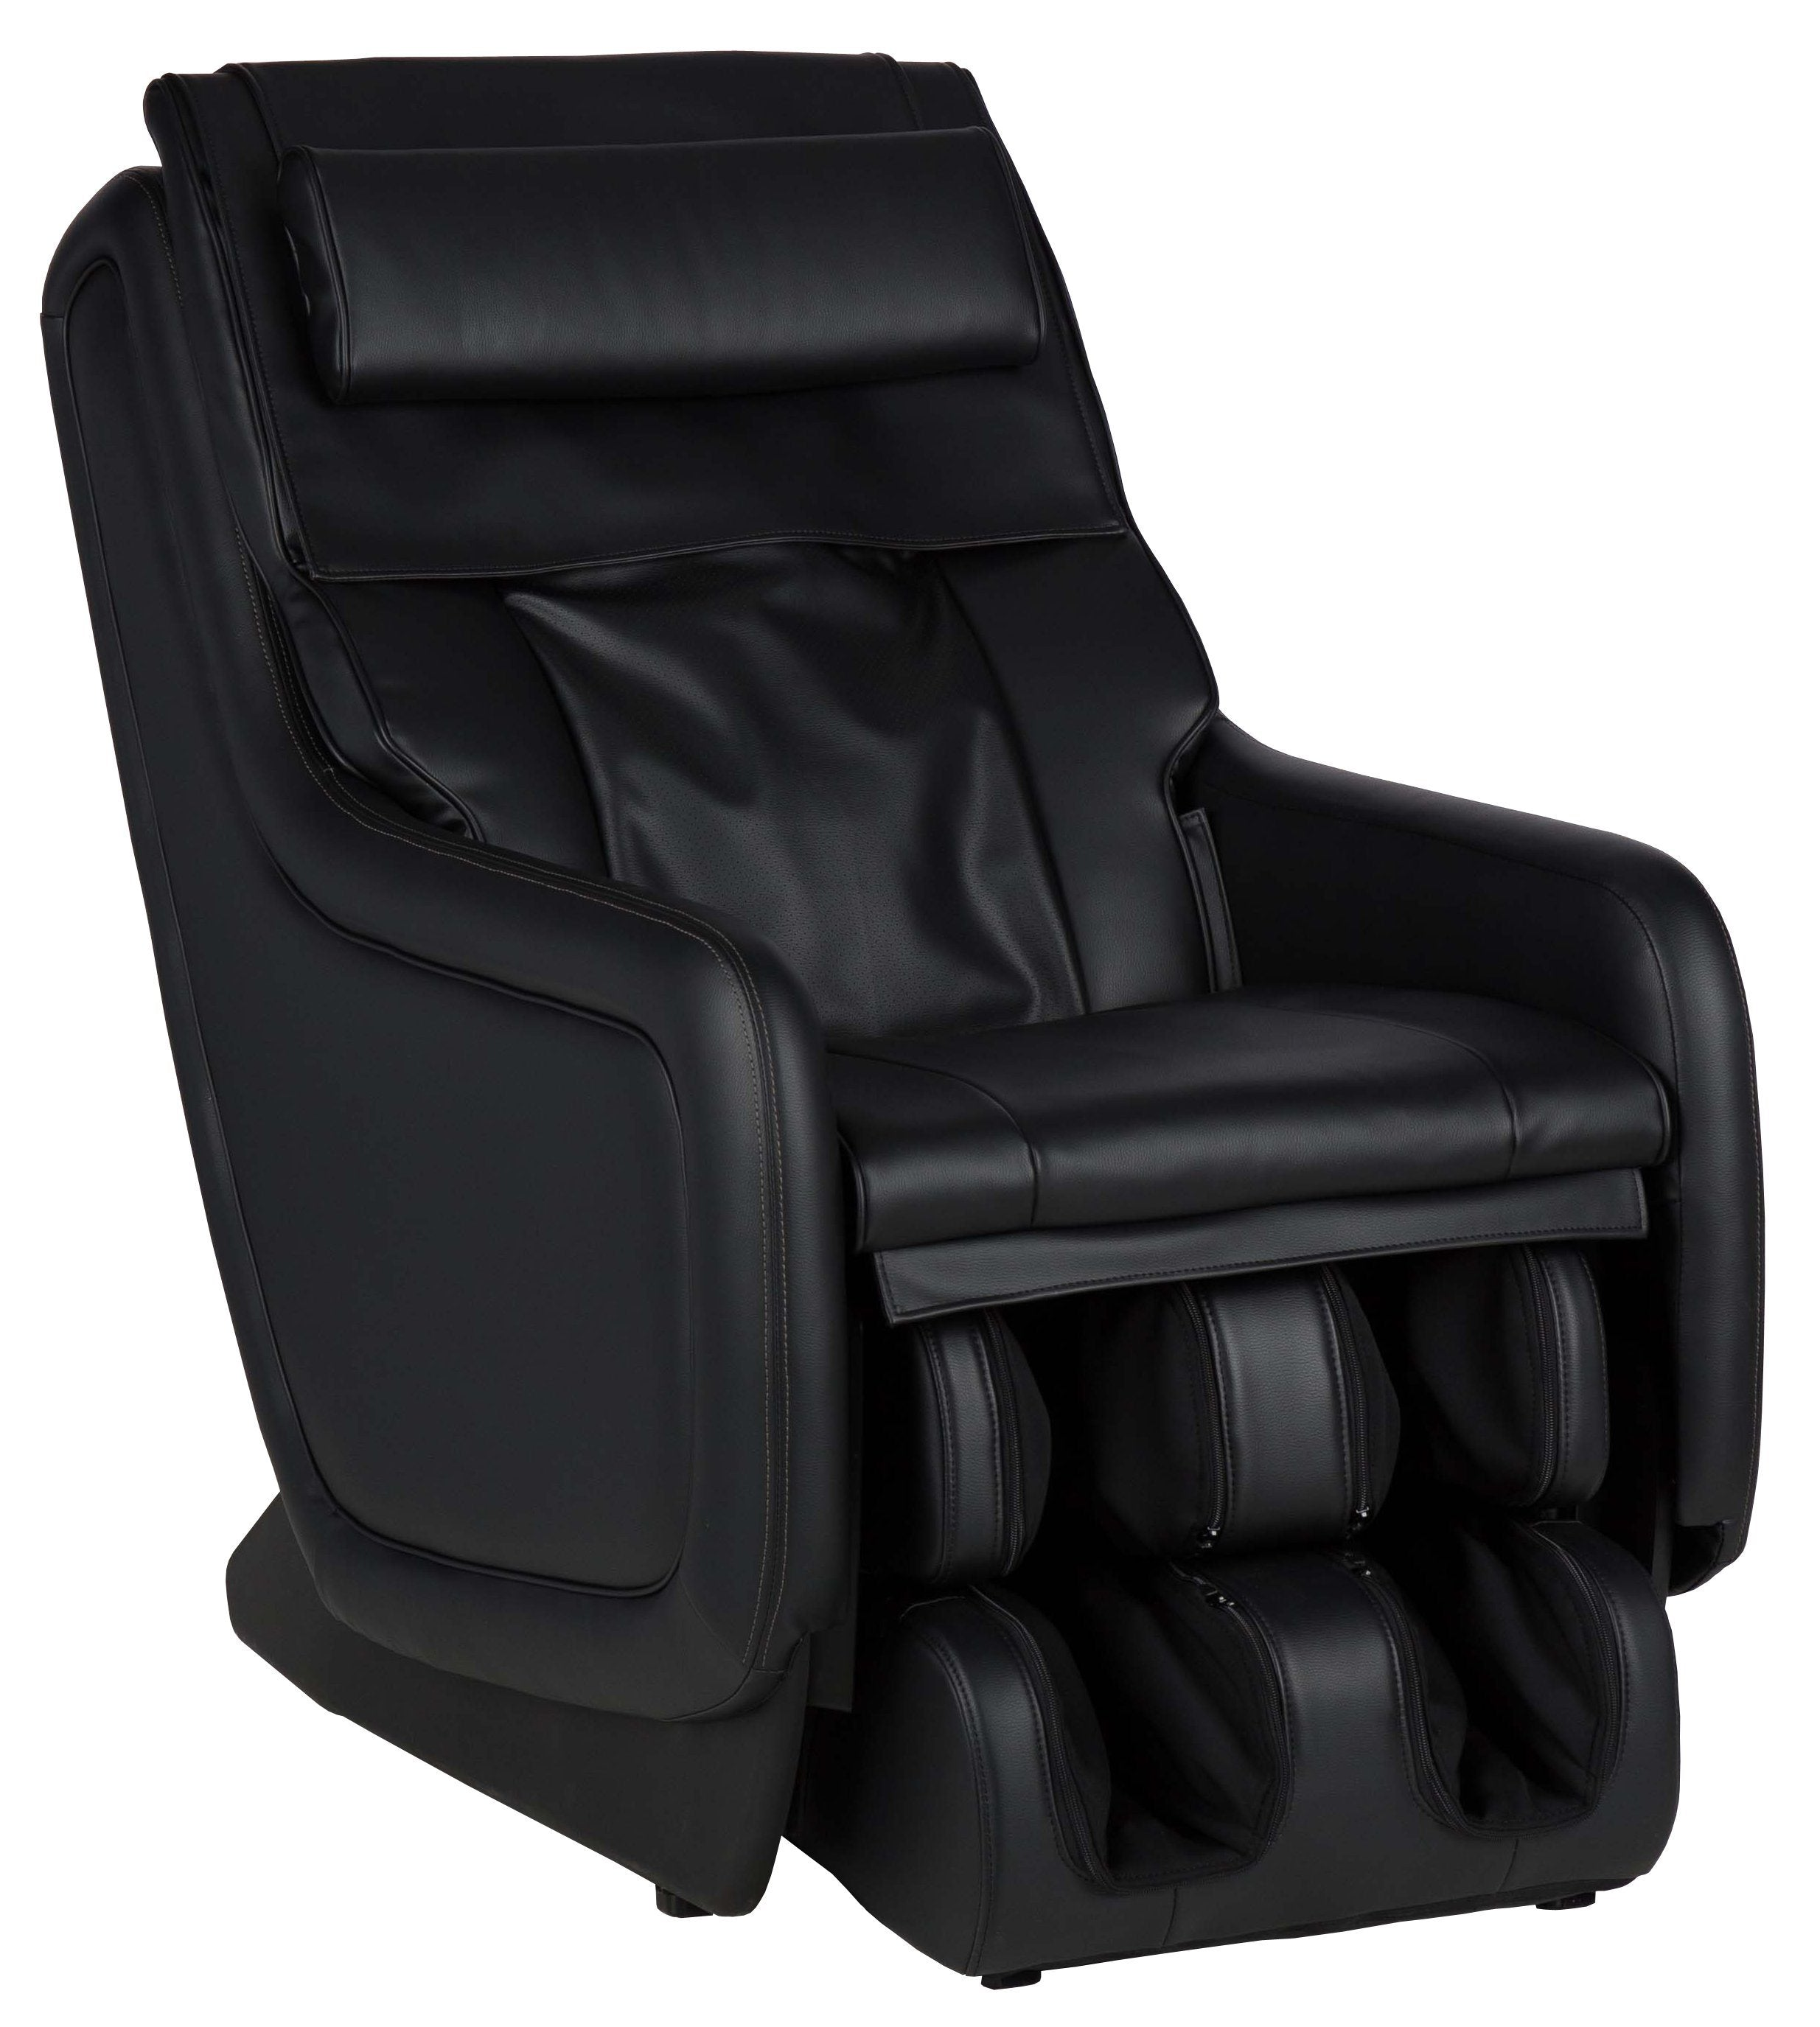 chairs fuji product chair massage dr fjuji fj